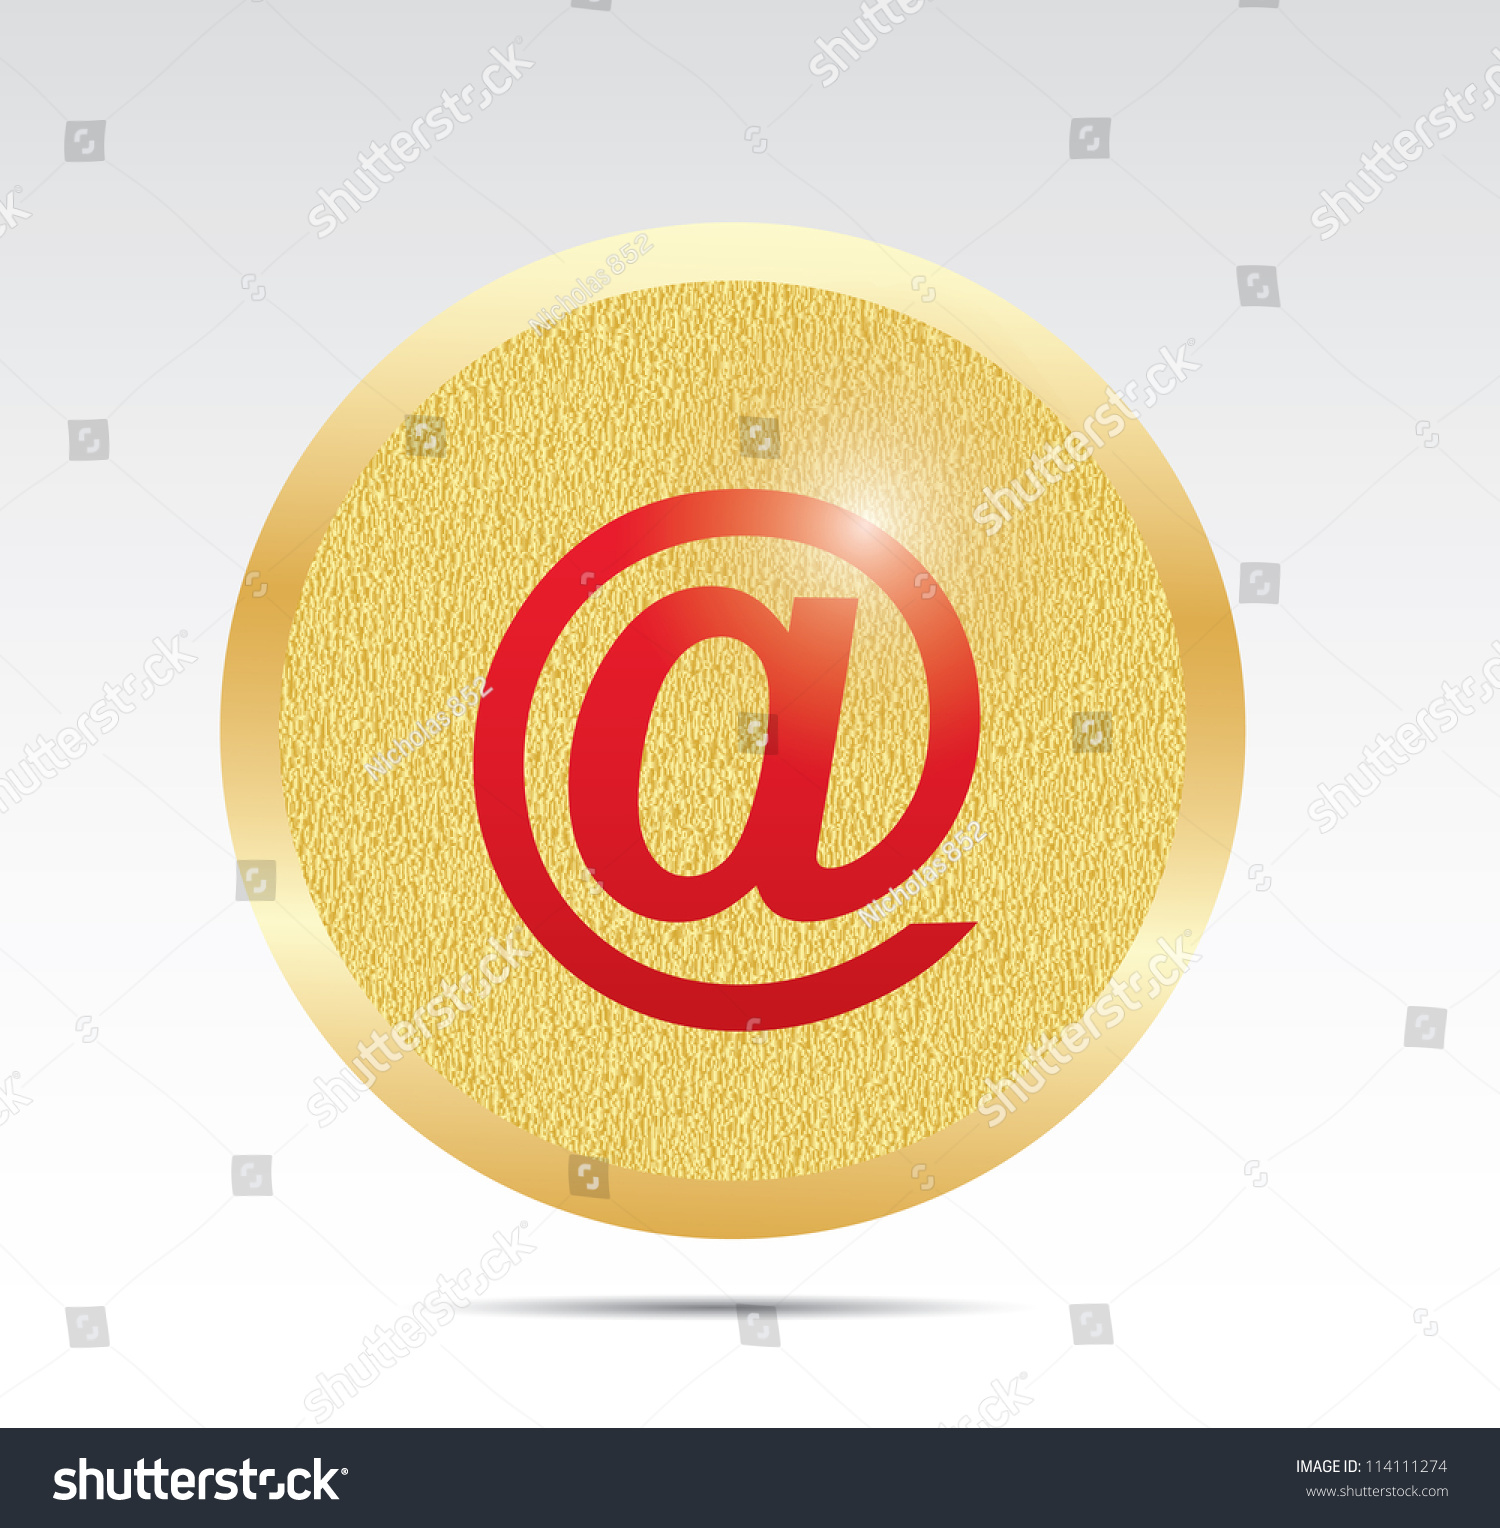 Email internet icon button stock illustration 114111274 shutterstock e mail internet icon button biocorpaavc